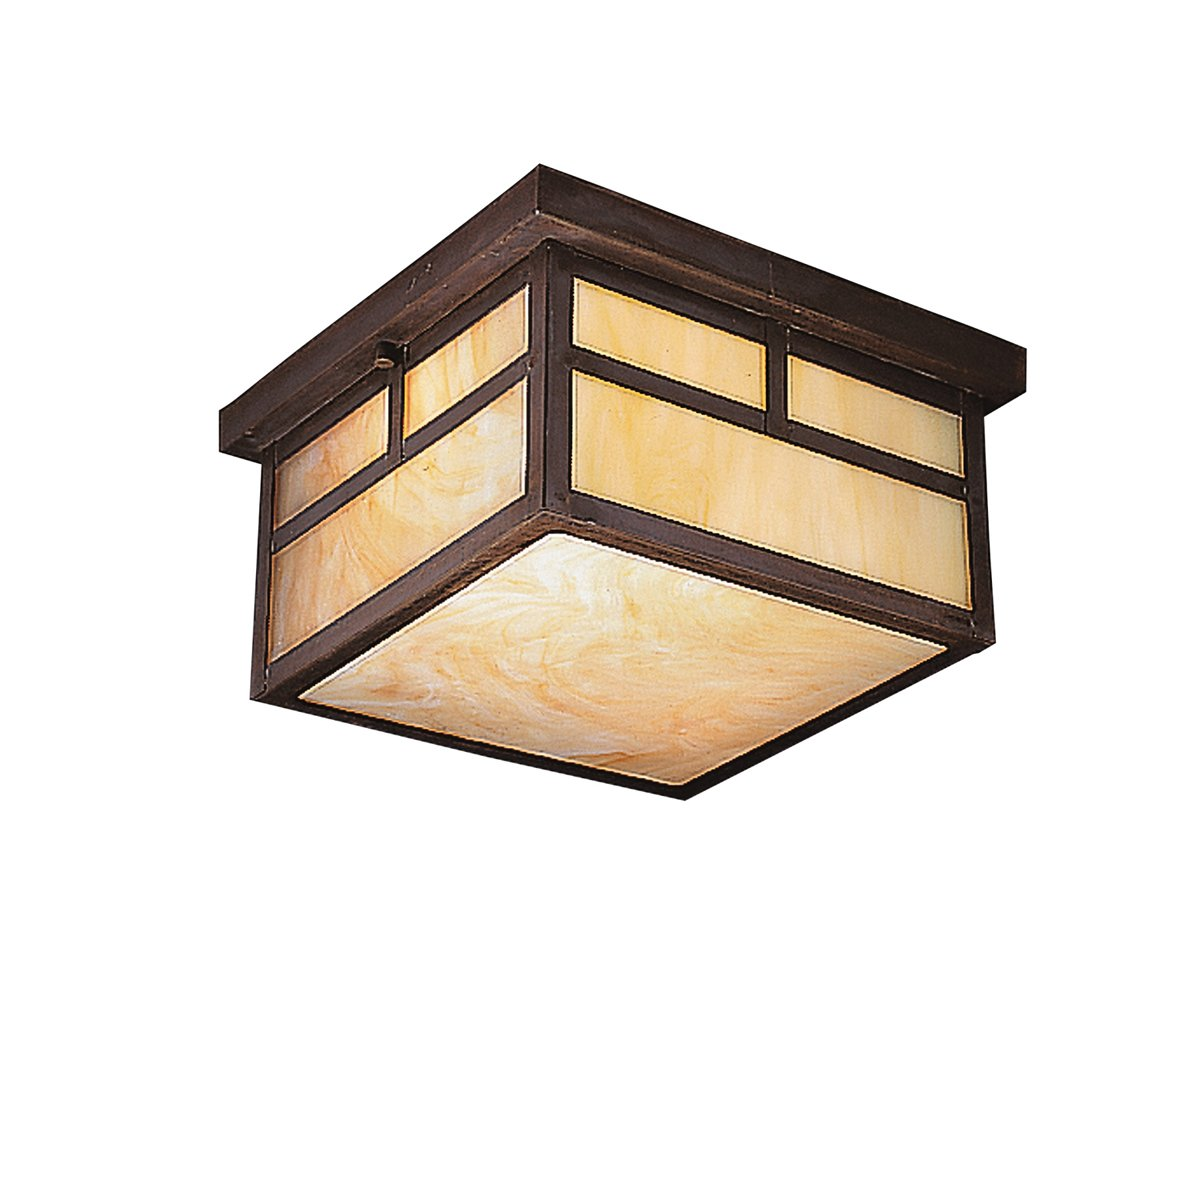 Kichler 9825cv two light outdoor ceiling mount flush mount ceiling kichler 9825cv two light outdoor ceiling mount flush mount ceiling light fixtures amazon arubaitofo Image collections